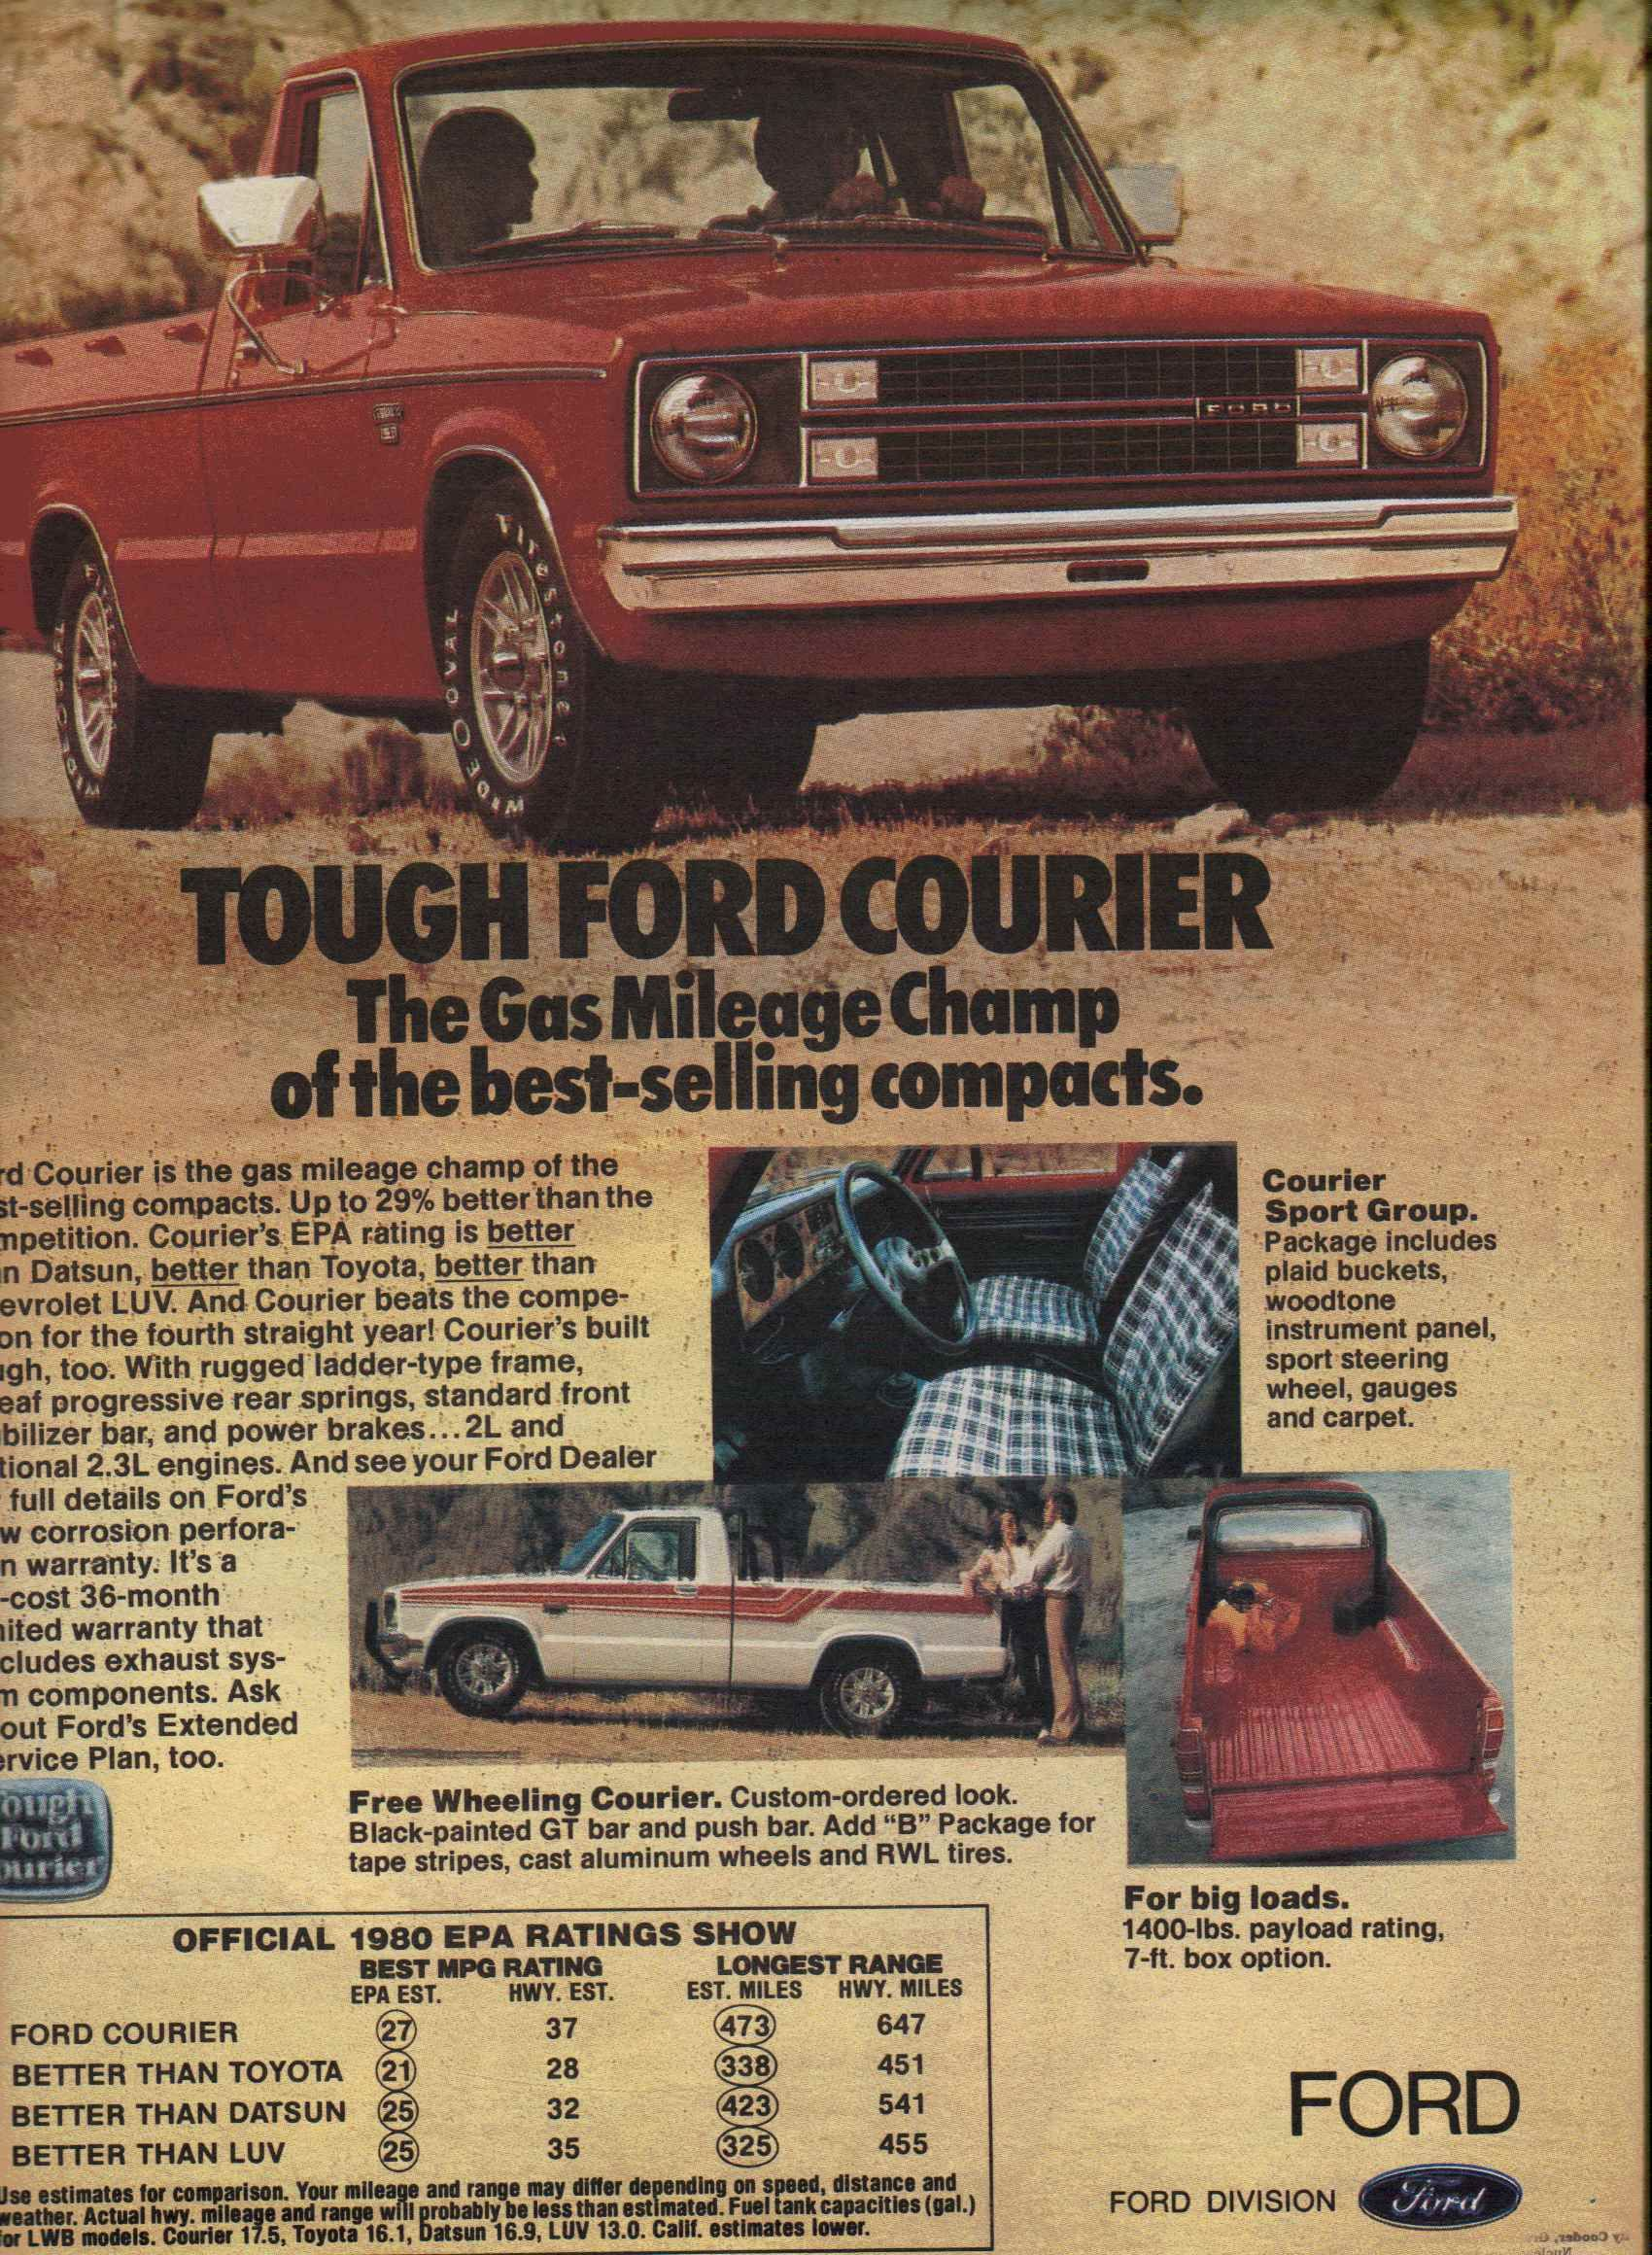 153052087309163845 in addition Pony Car Madness 10 Classic Mustang Ads additionally Dead Brand Madness 10 Classic Edsel Ads furthermore Dmca  pliance likewise Dead Brand Madness 10 Classic Edsel Ads. on 70s madness 10 years of classic pickup truck ads